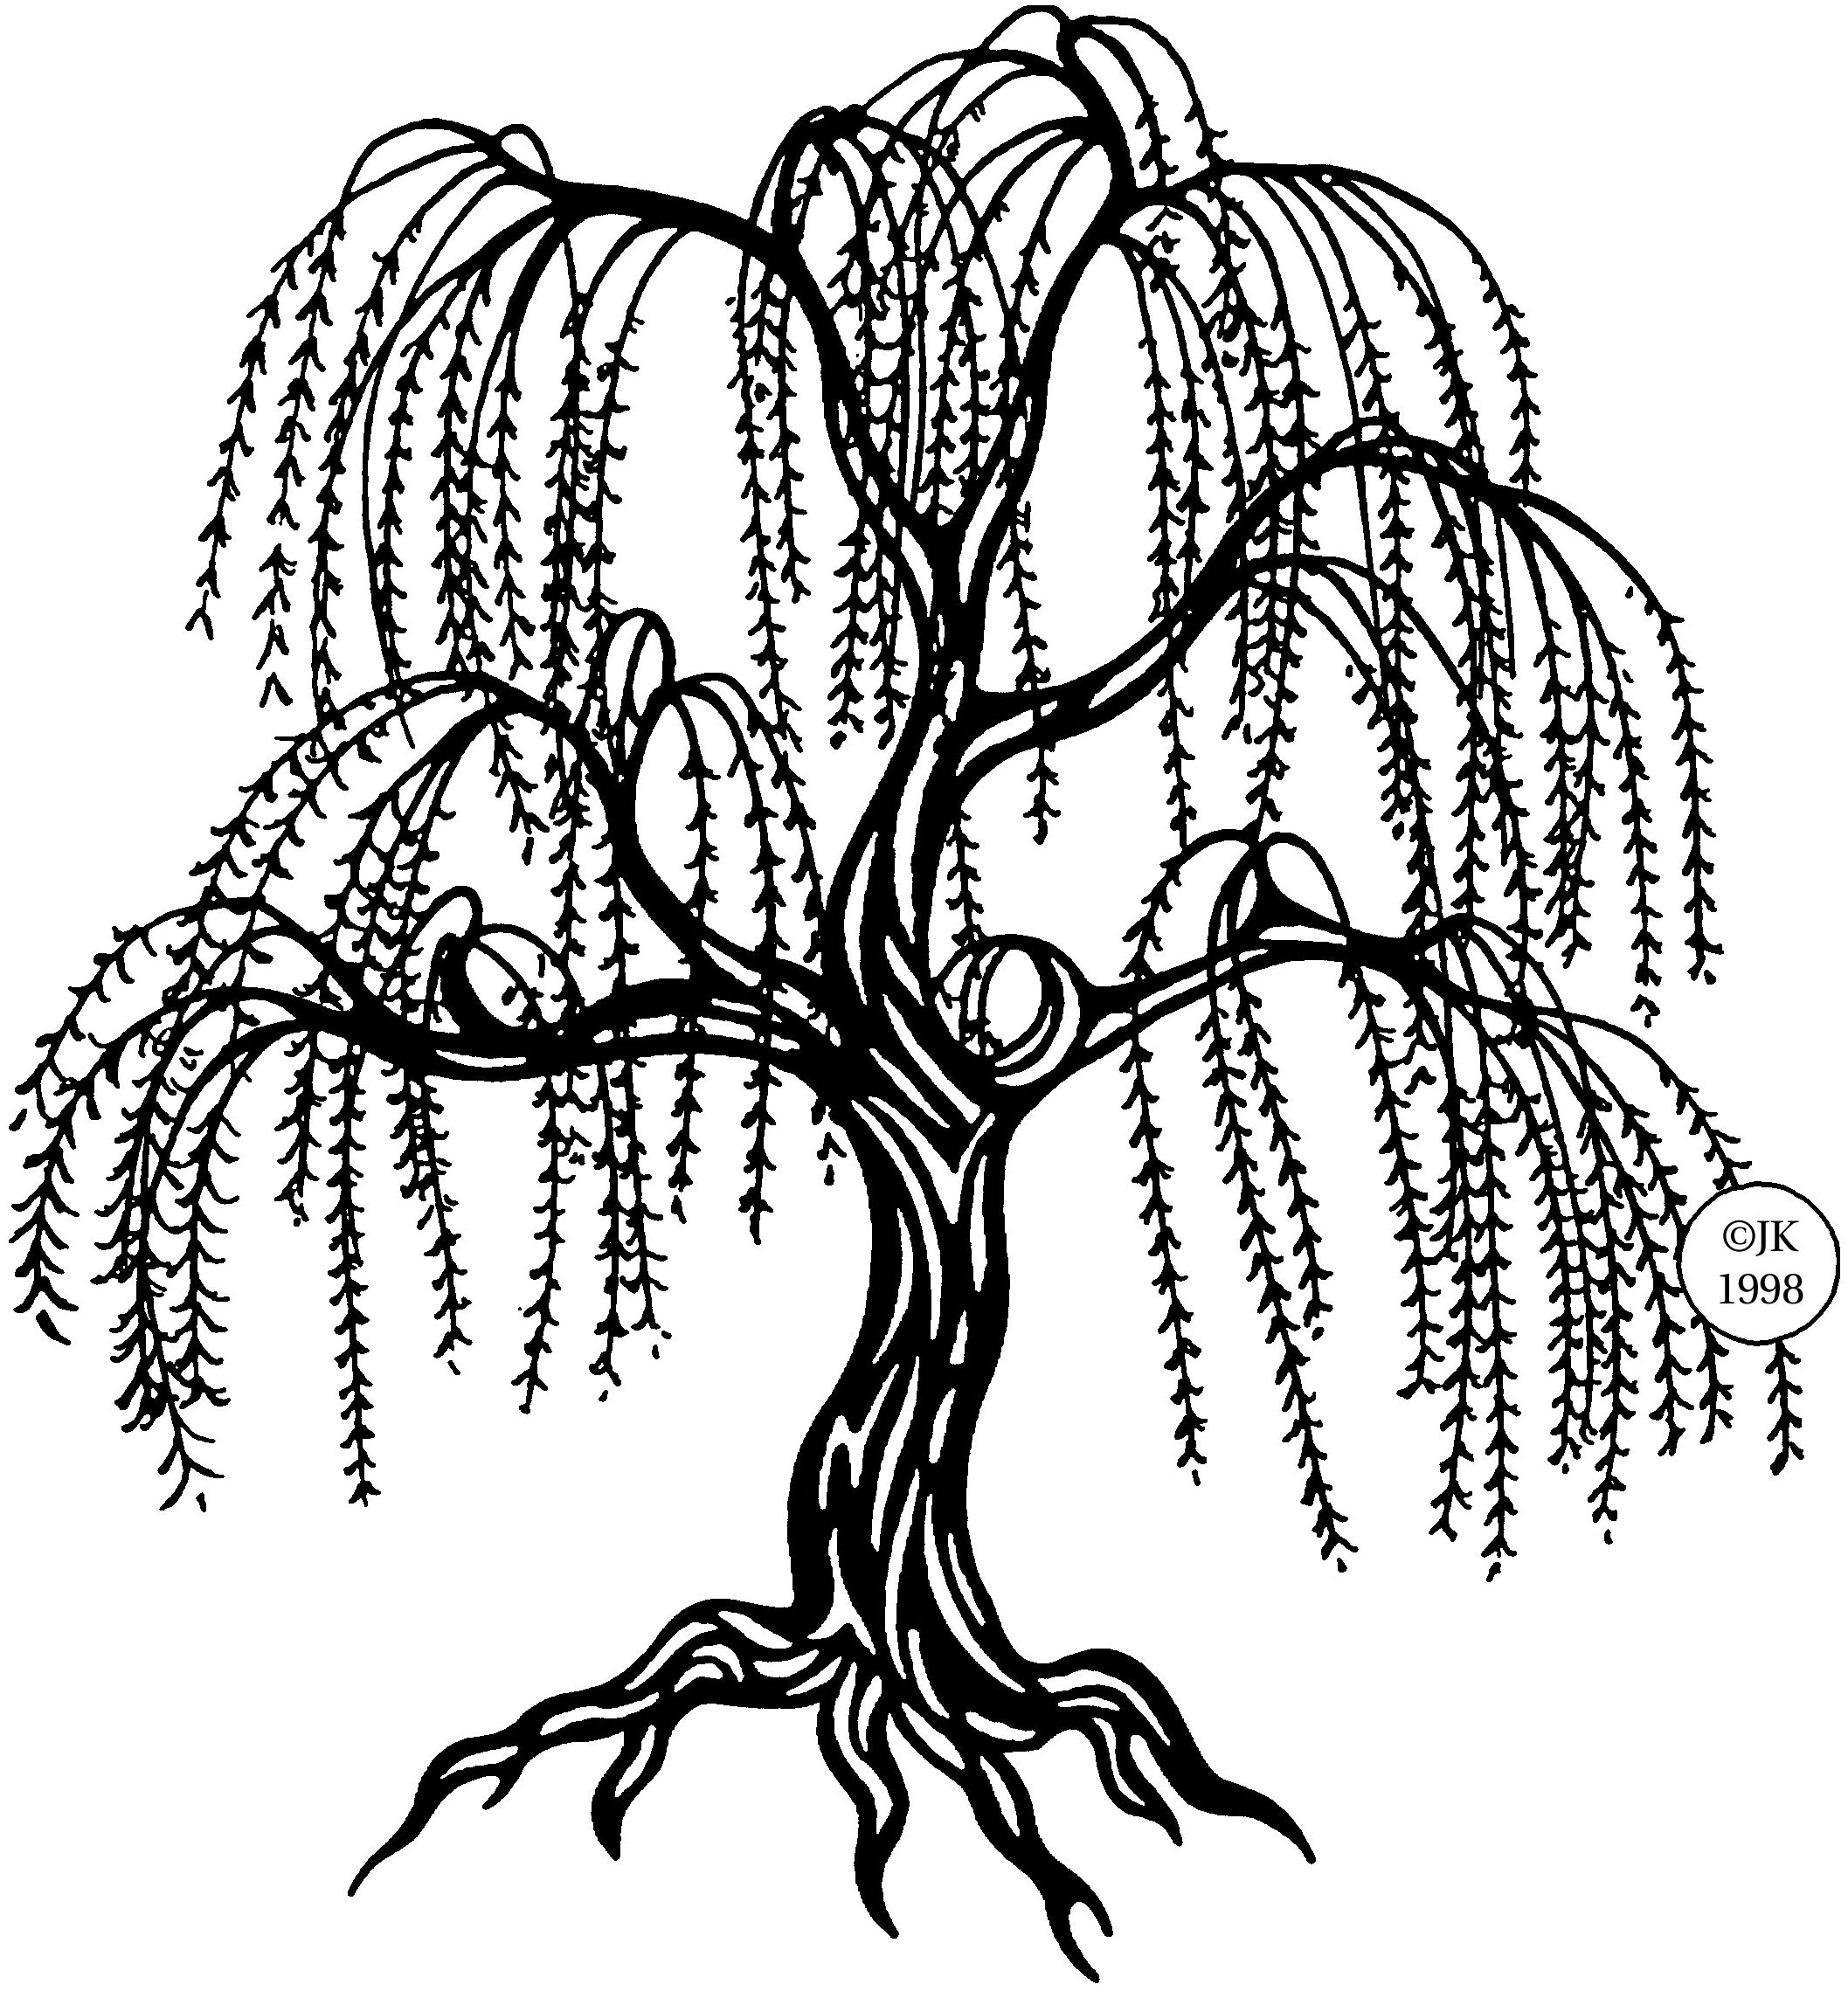 willow tree coloring page willow tree coloring pages for kids free printable willow page willow tree coloring 1 1